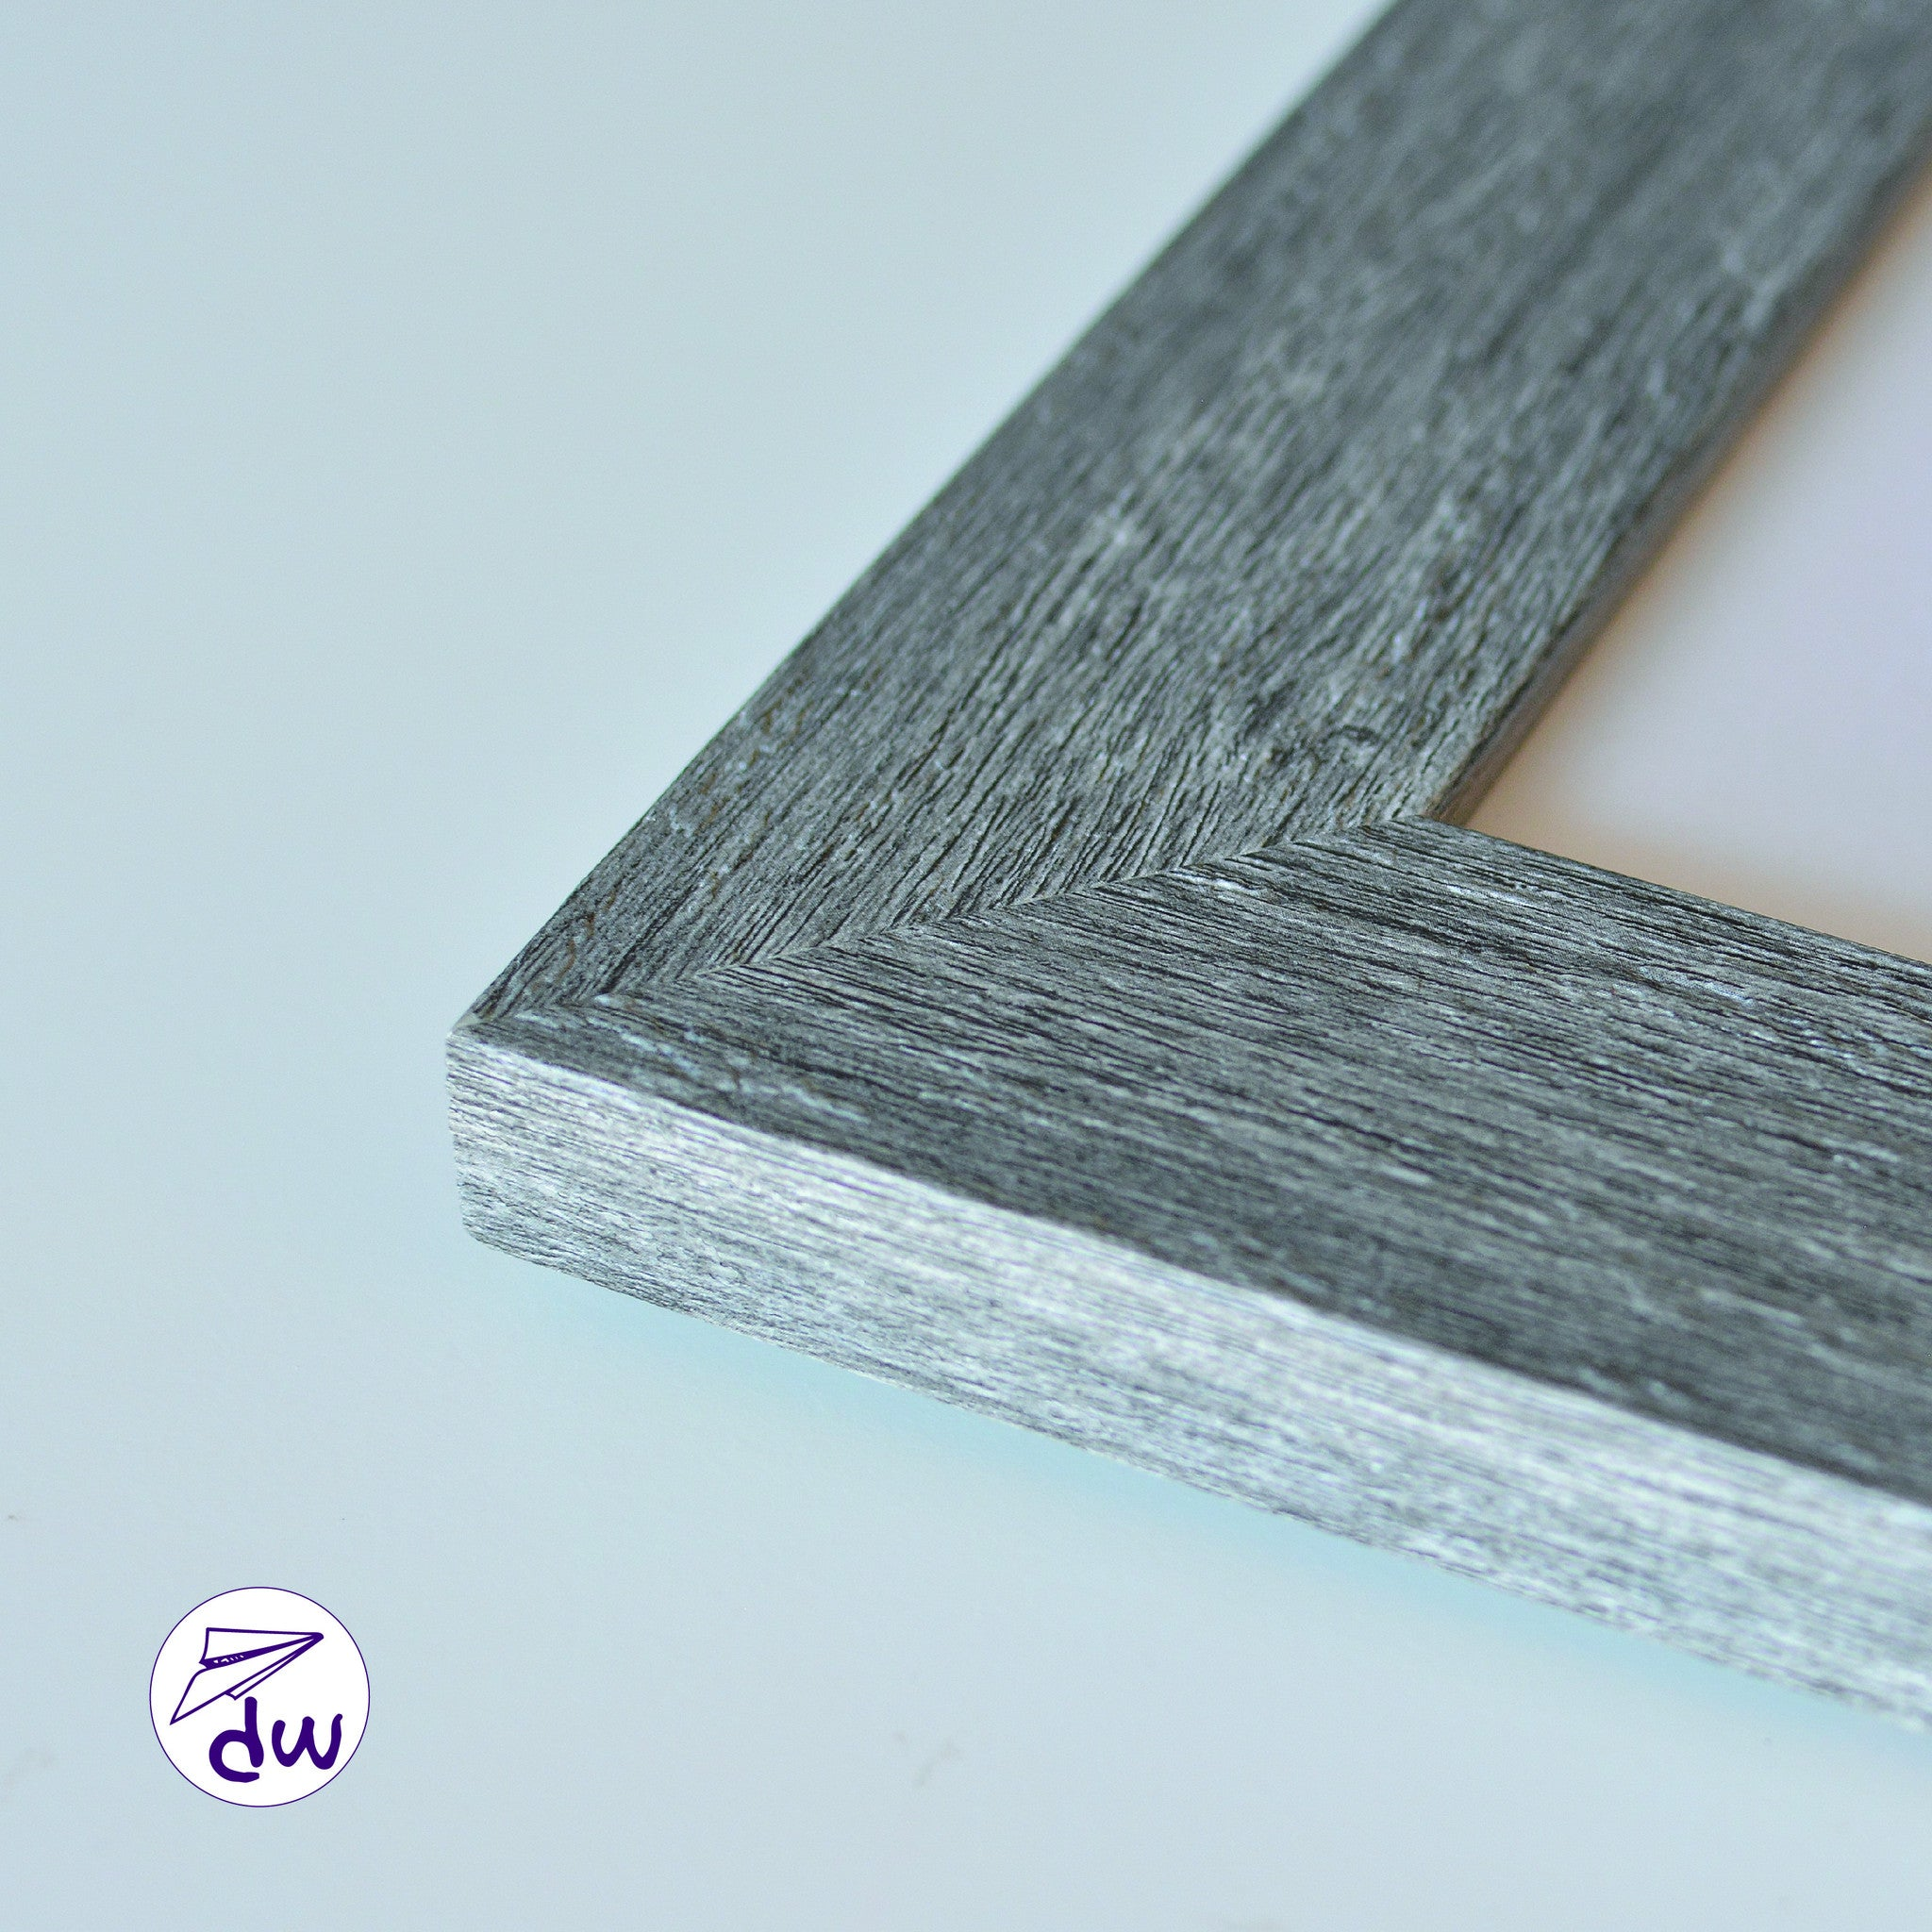 Add A Frame - Barnwood